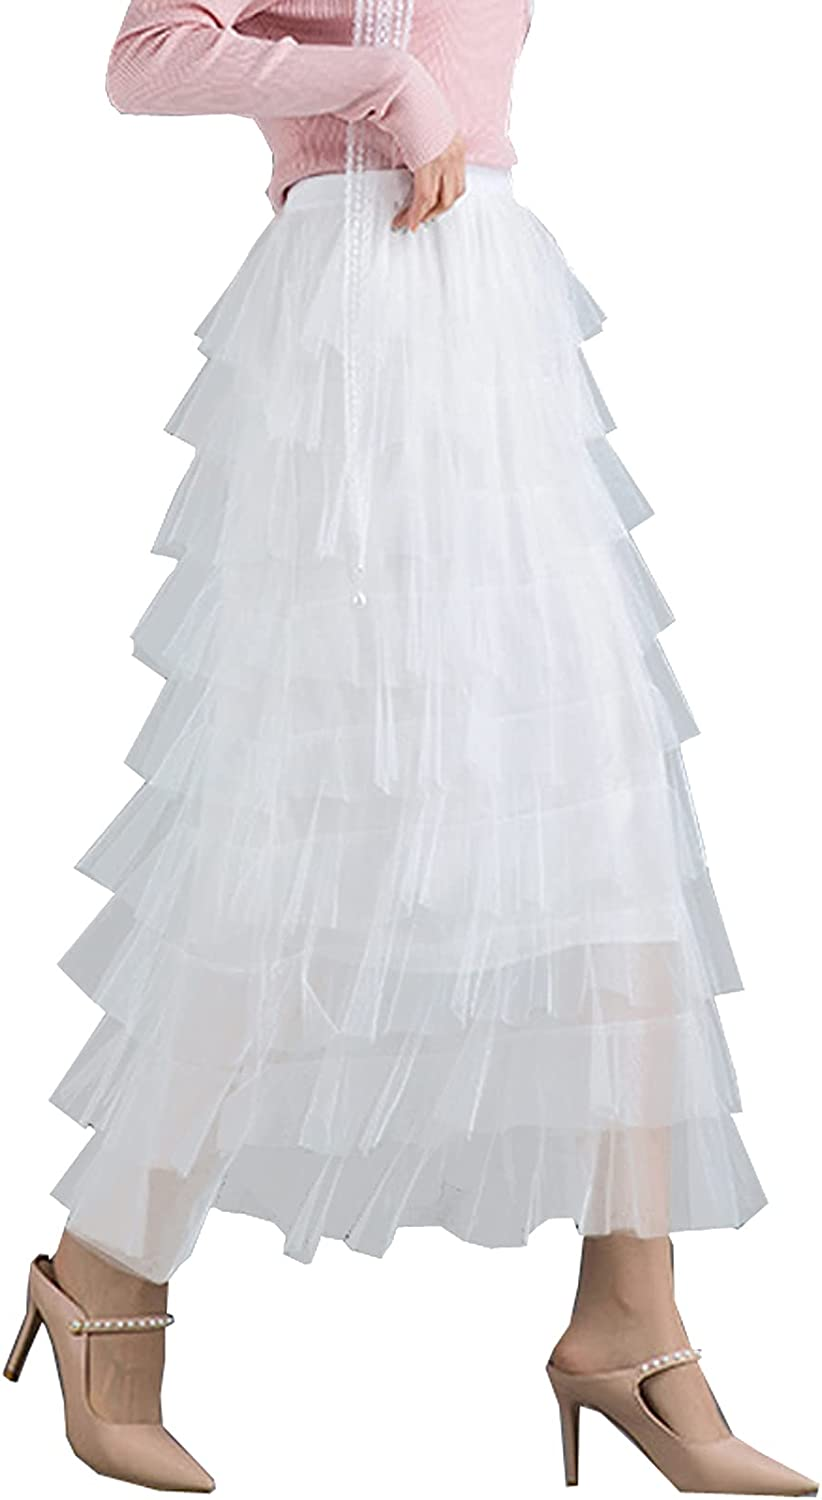 BDQING Women's Elastic Waist Tiered Layered Mesh Ballet Prom Party Tulle Tutu A-line Long Skirt